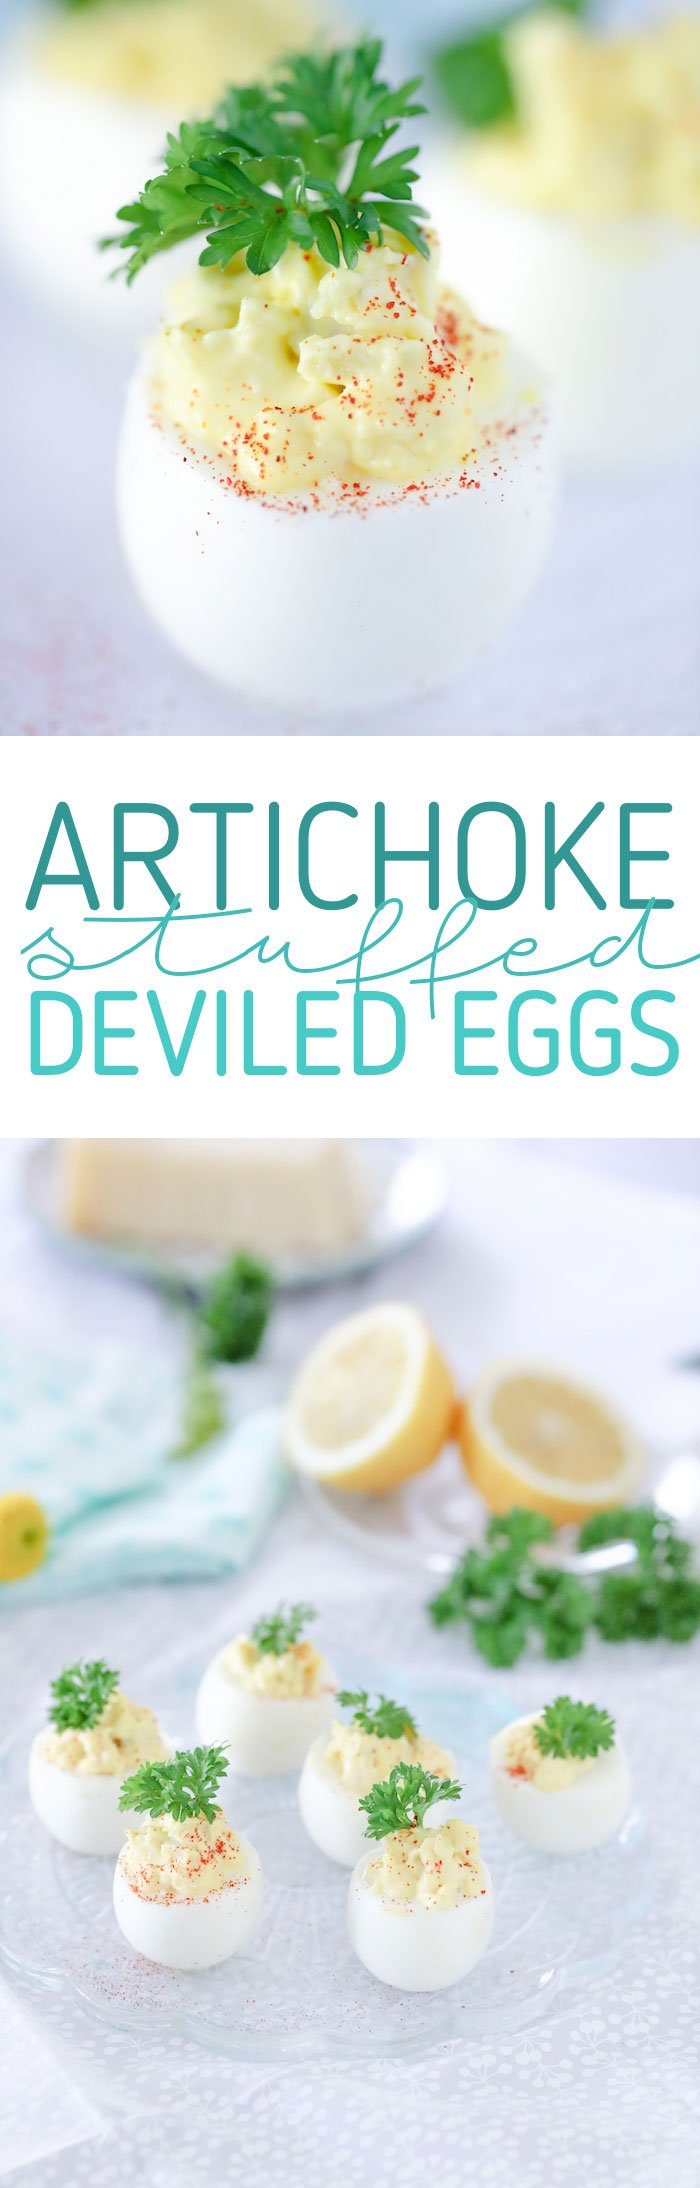 Artichoke Stuffed Deviled Eggs. So good for a twist on the traditional recipe.